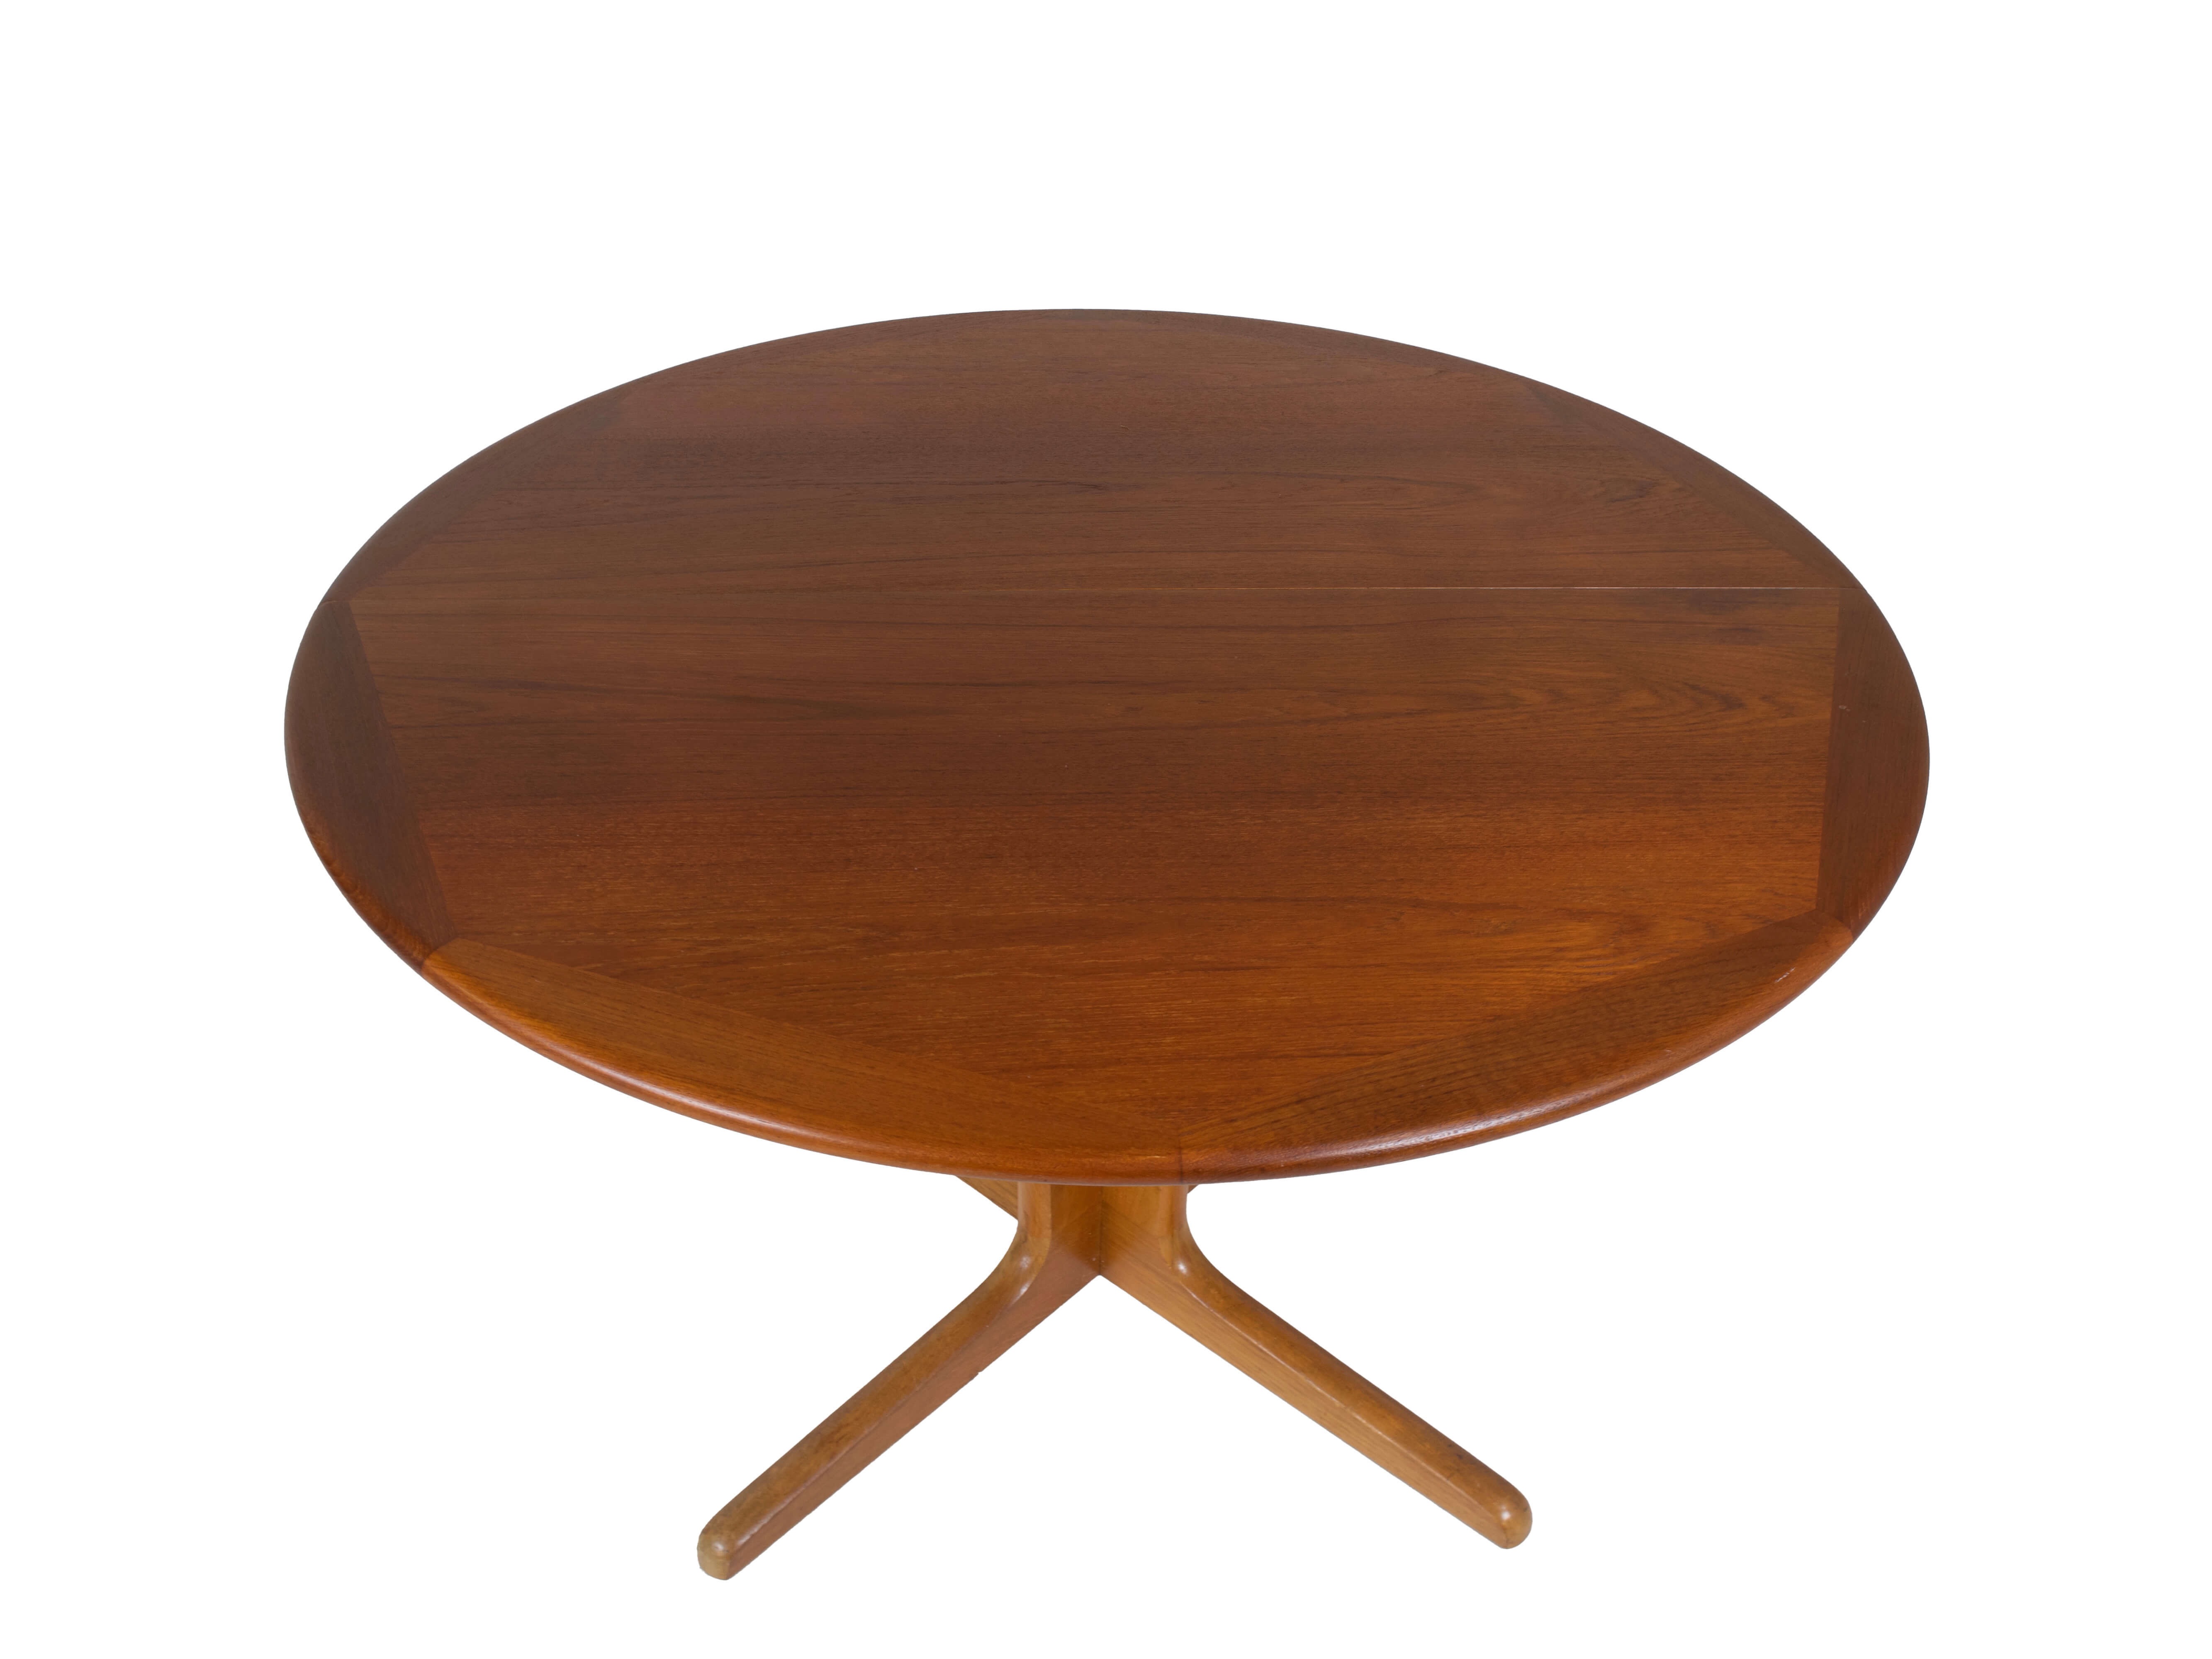 Top view Extendable Dining Table in Teak attr. to Niels Otto Moller for Gudme